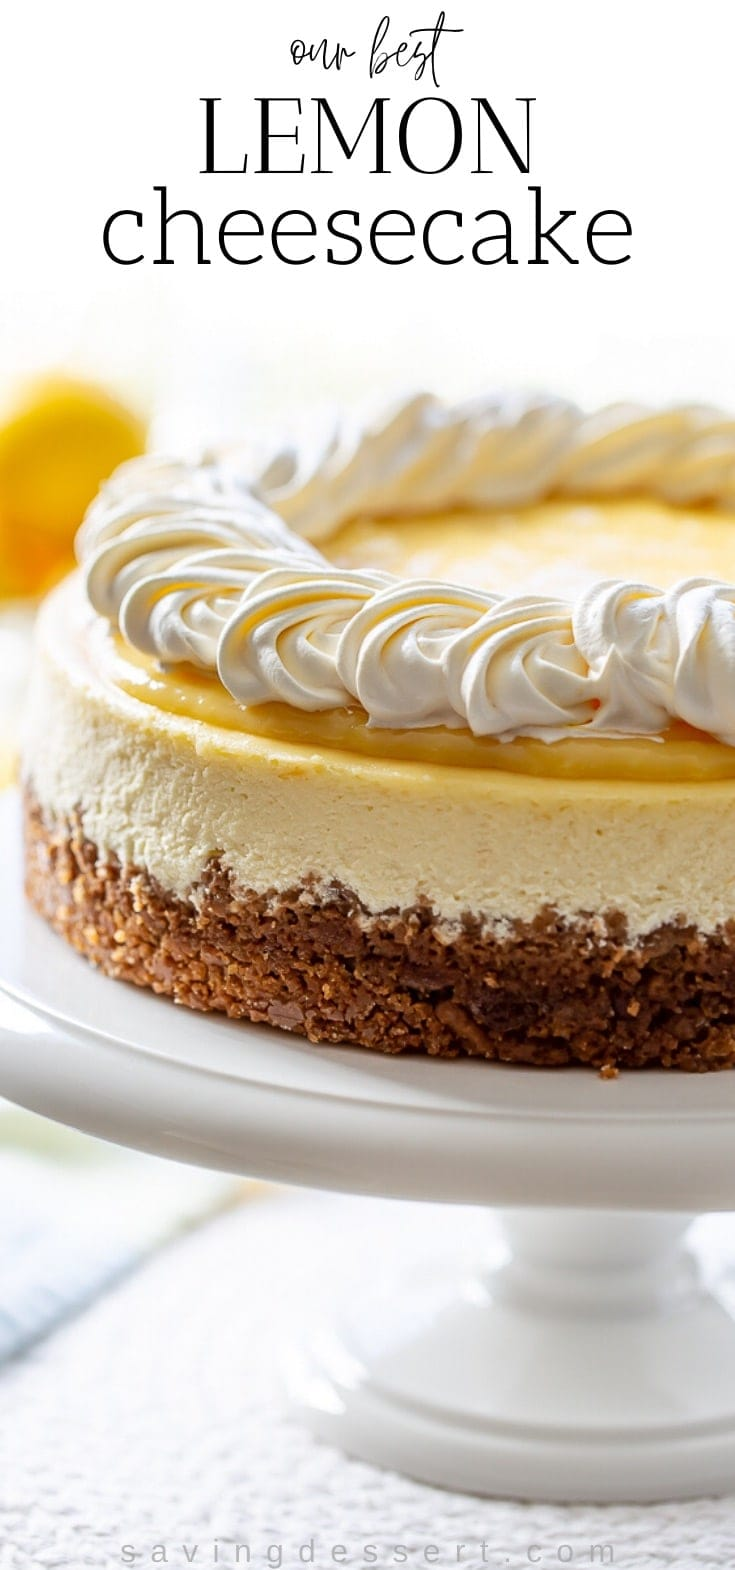 A side view of a lemon cheesecake with lemon curd on top decorated with whipped cream